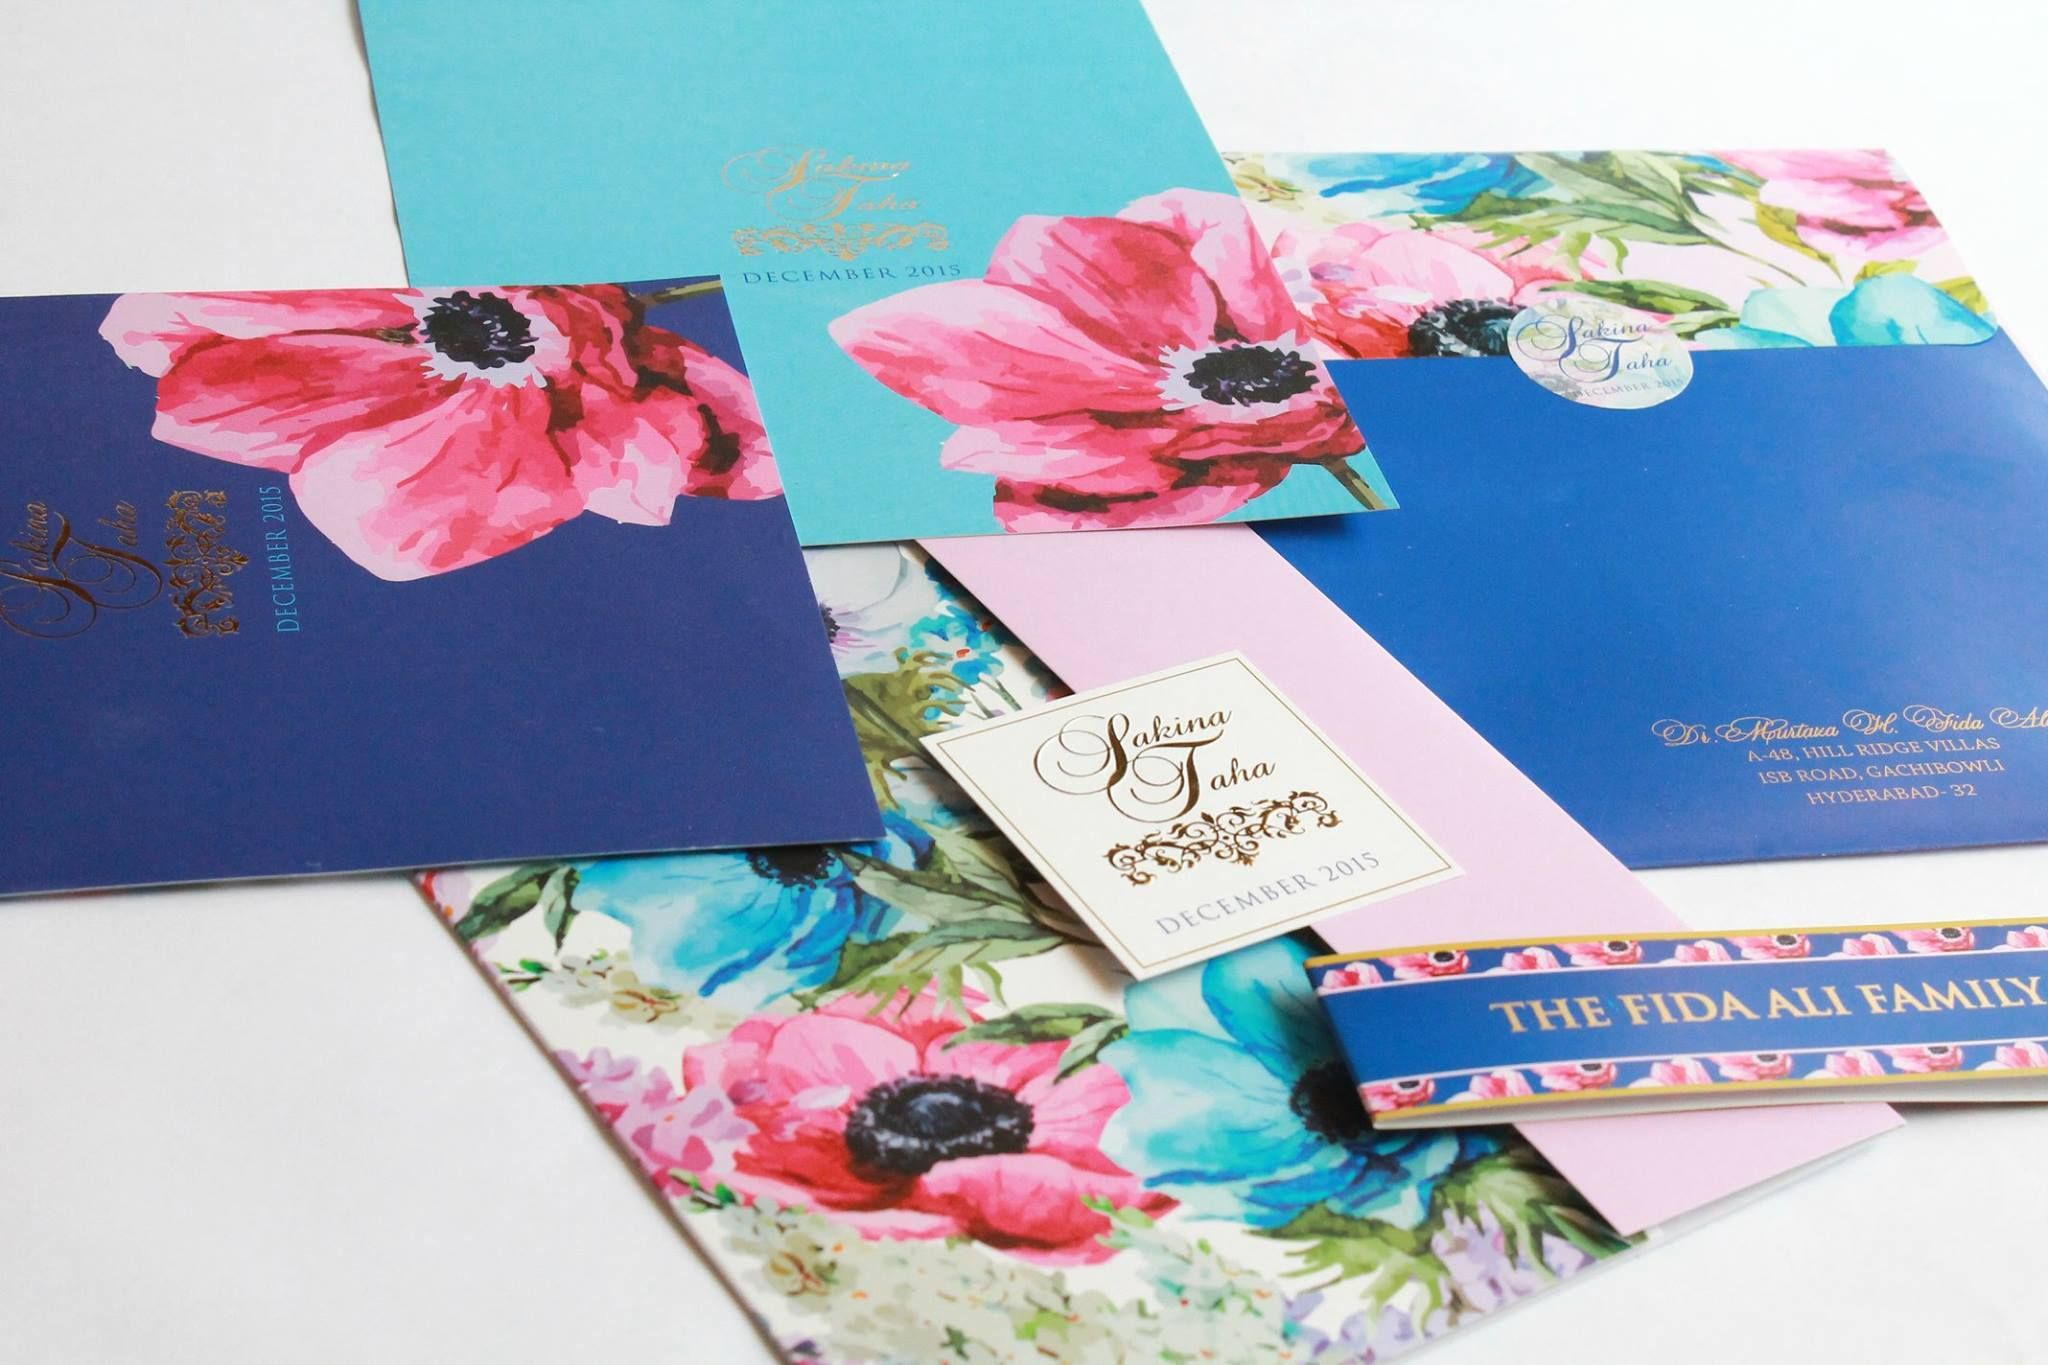 Painted Floral Prints For Sakina Taha S Wedding Invite By Pretty